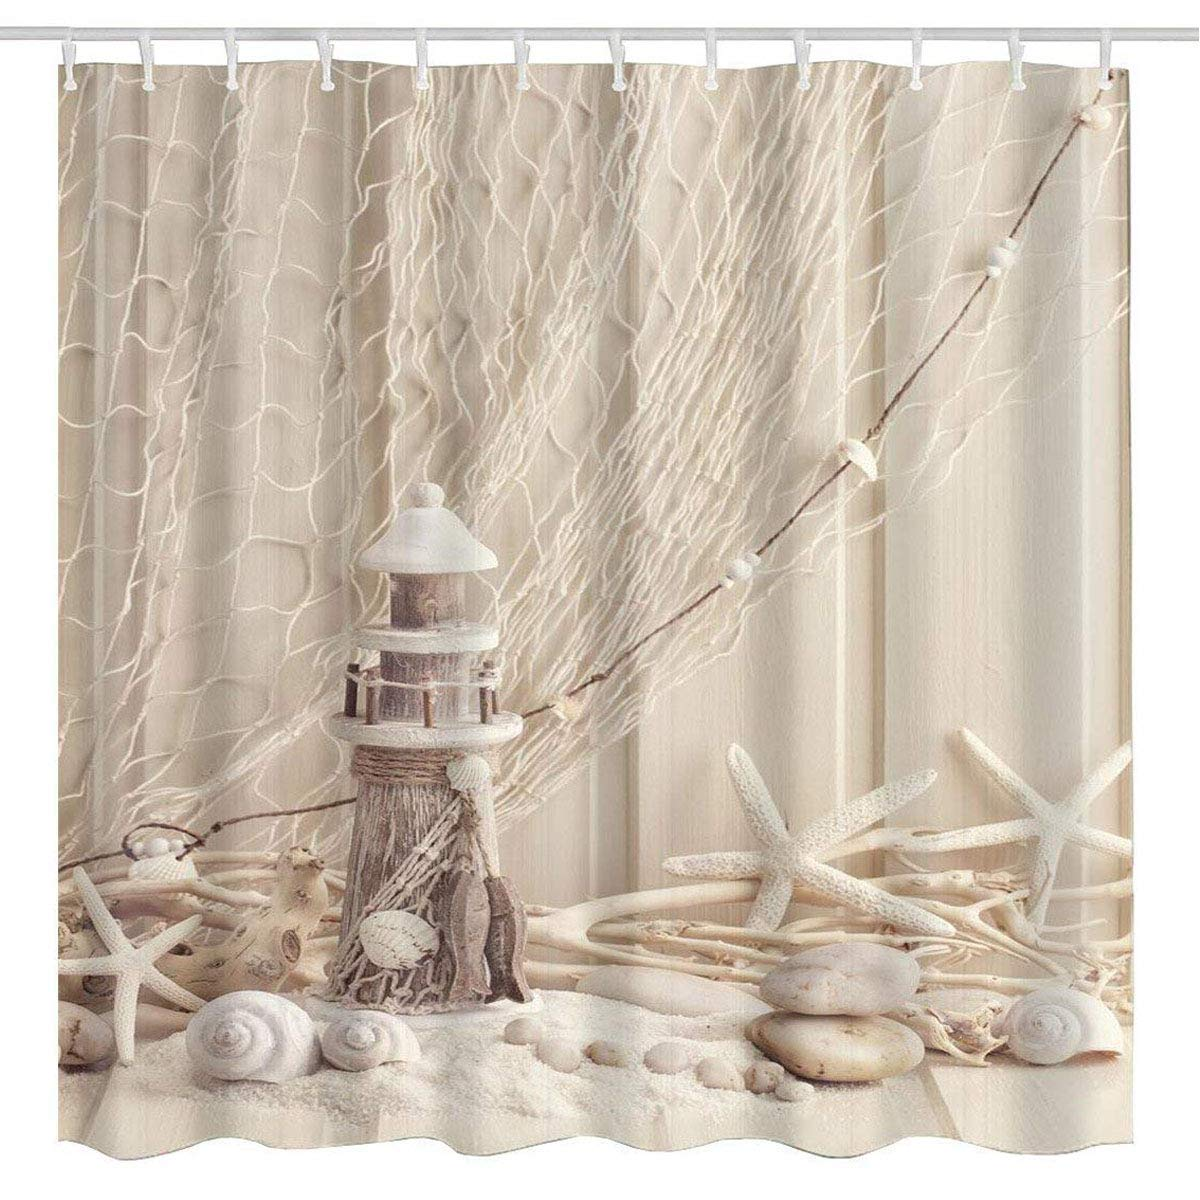 Buy Broshan Nautical Seashell Decor Shower Curtain Fabric